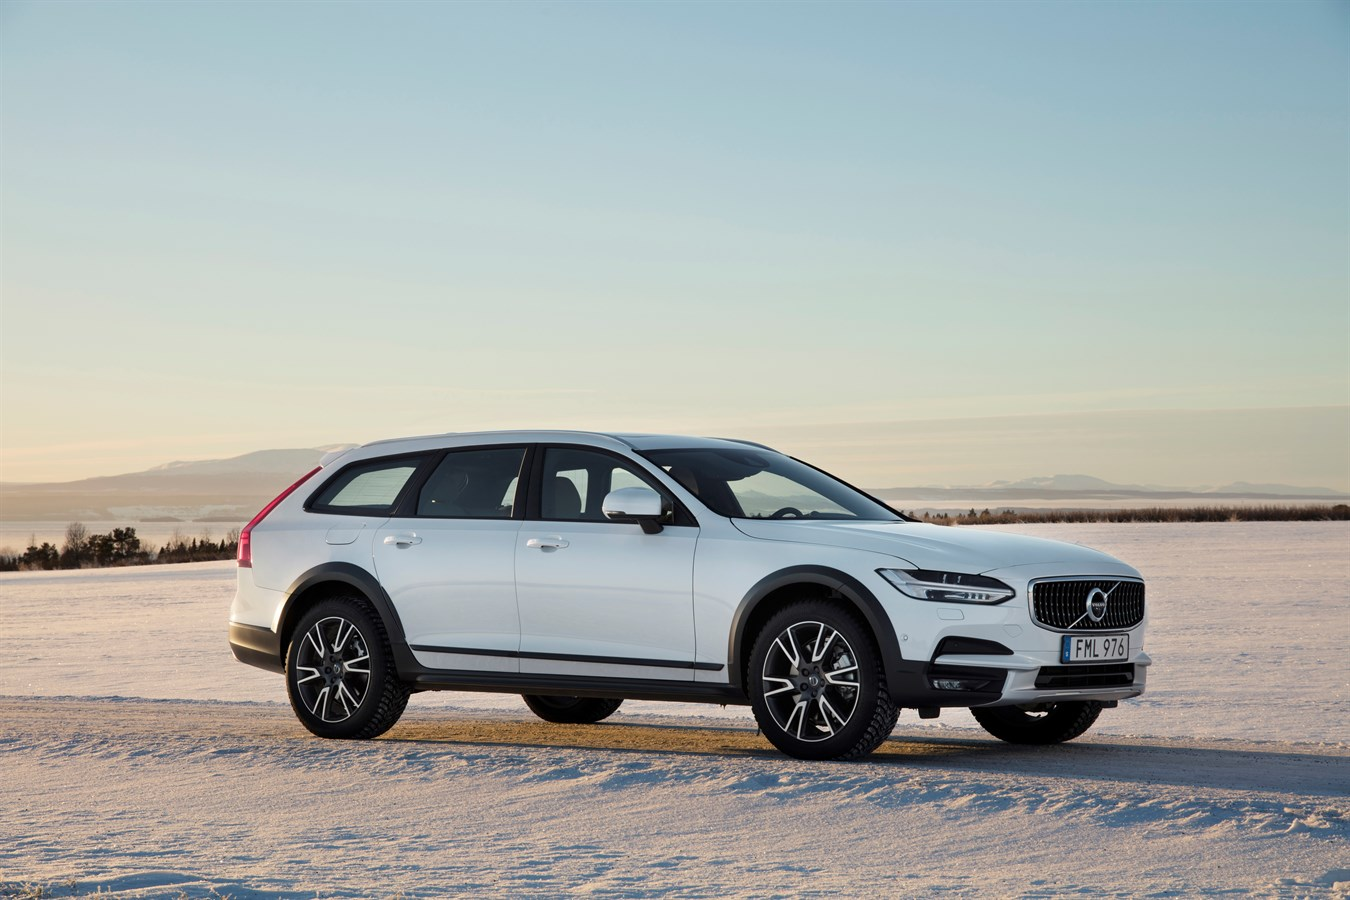 Volvo Cars Celebrates 20 Years Of All Wheel Drive In The Snow With A Firm Eye On Future Car Group Global Media Newsroom